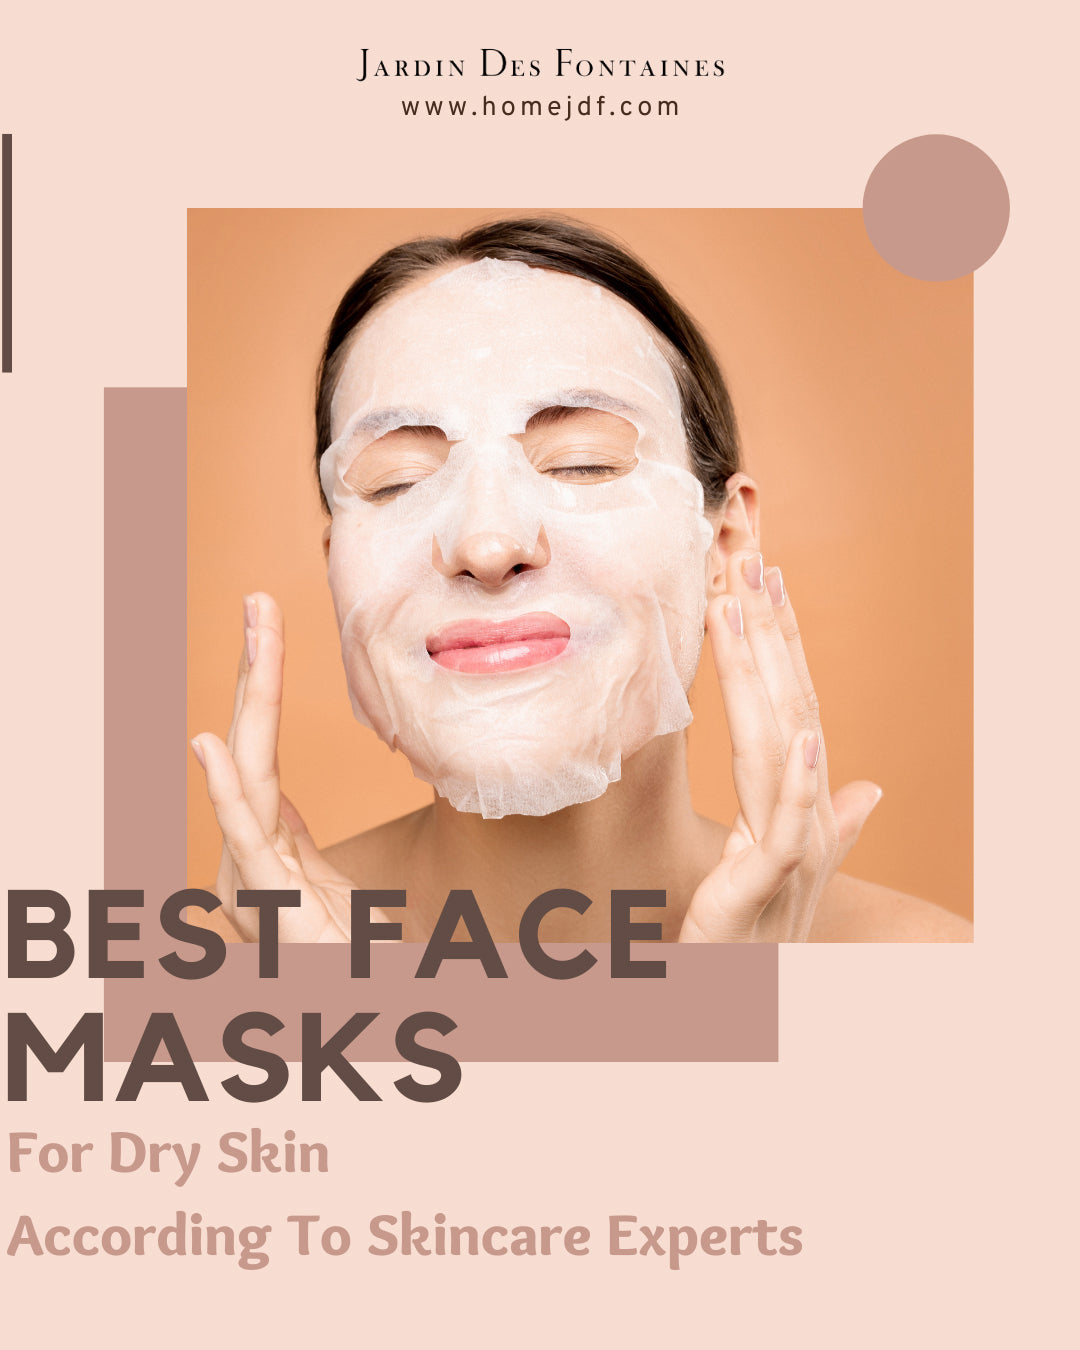 Face Masks For Dry Skin, According To Skincare Experts